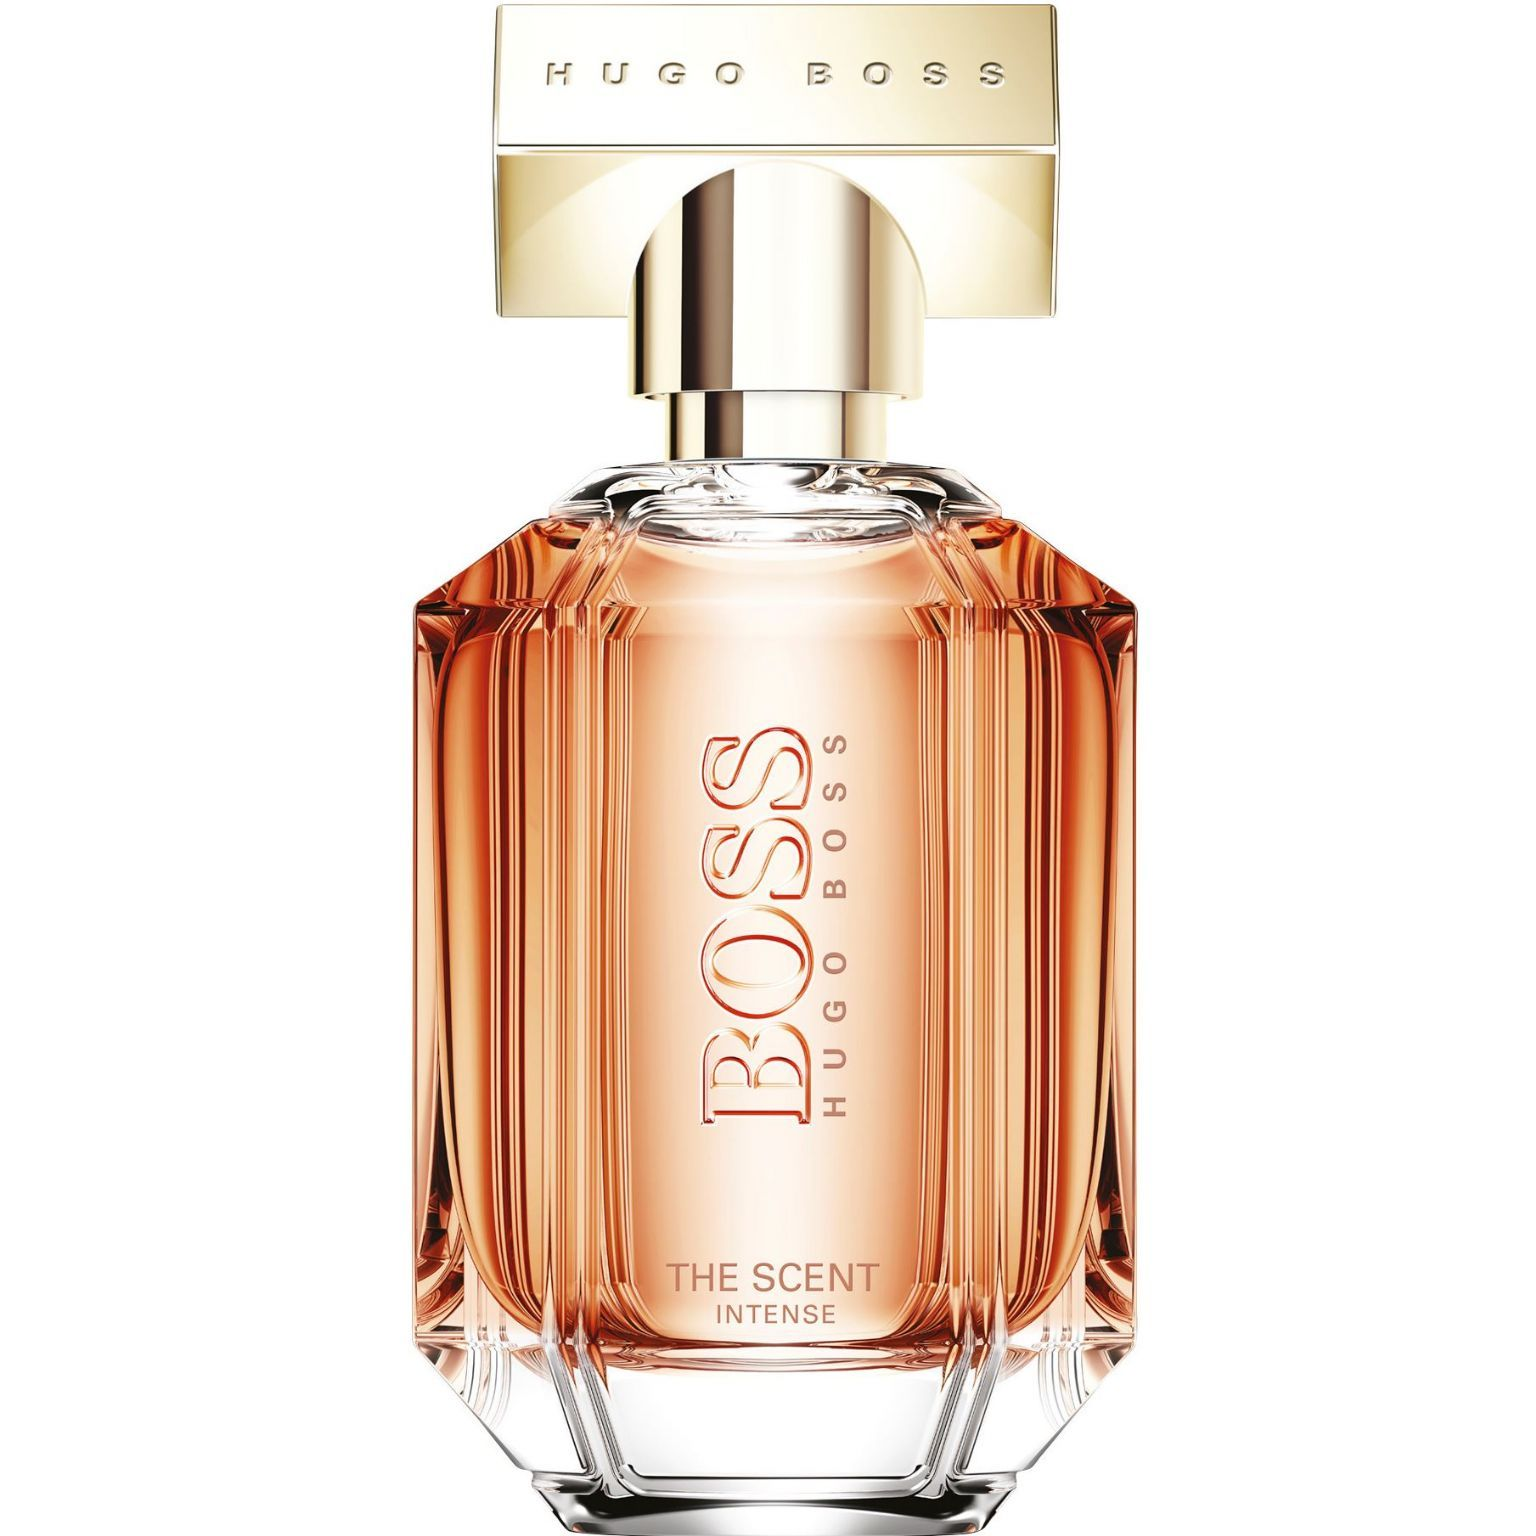 The Scent for Her Intense Eau de Parfum Spray